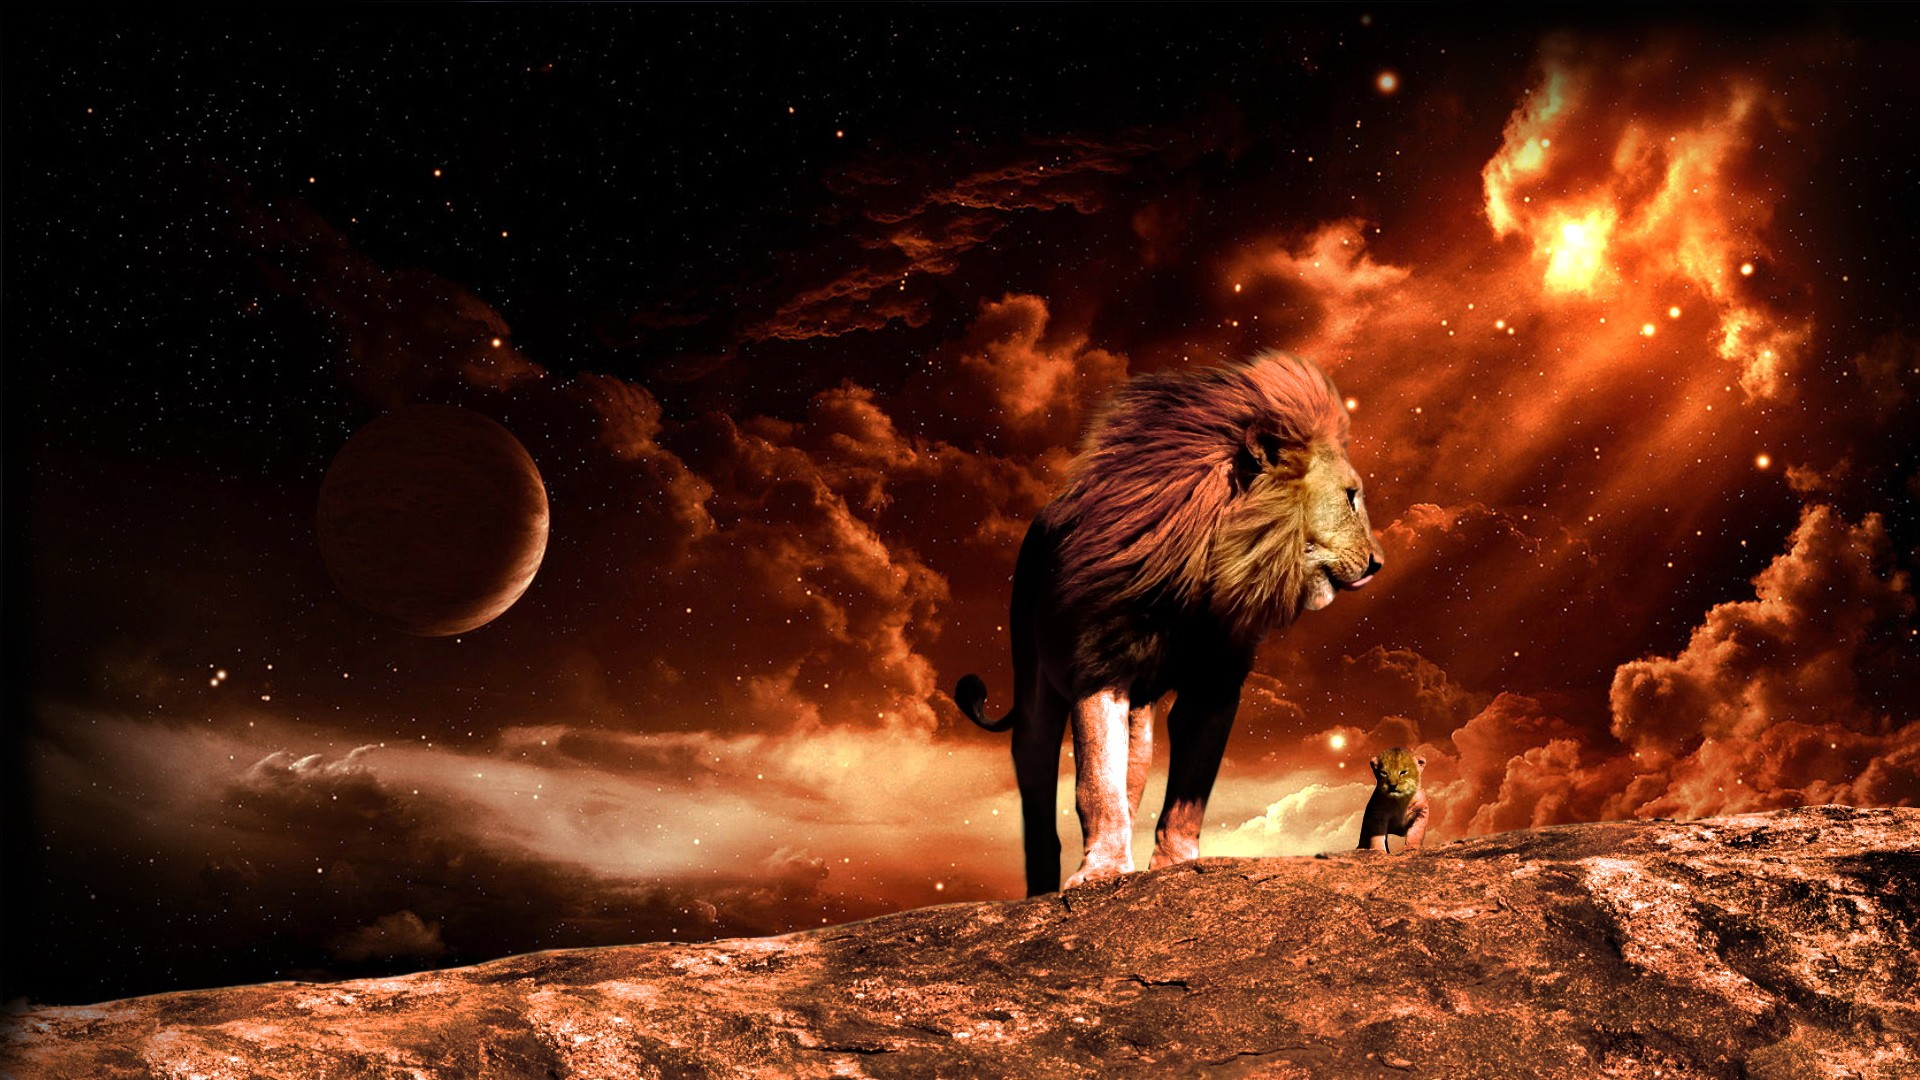 Black Lion Hd Wallpapers Hd Backgrounds Tumblr Backgrounds Images Pictures